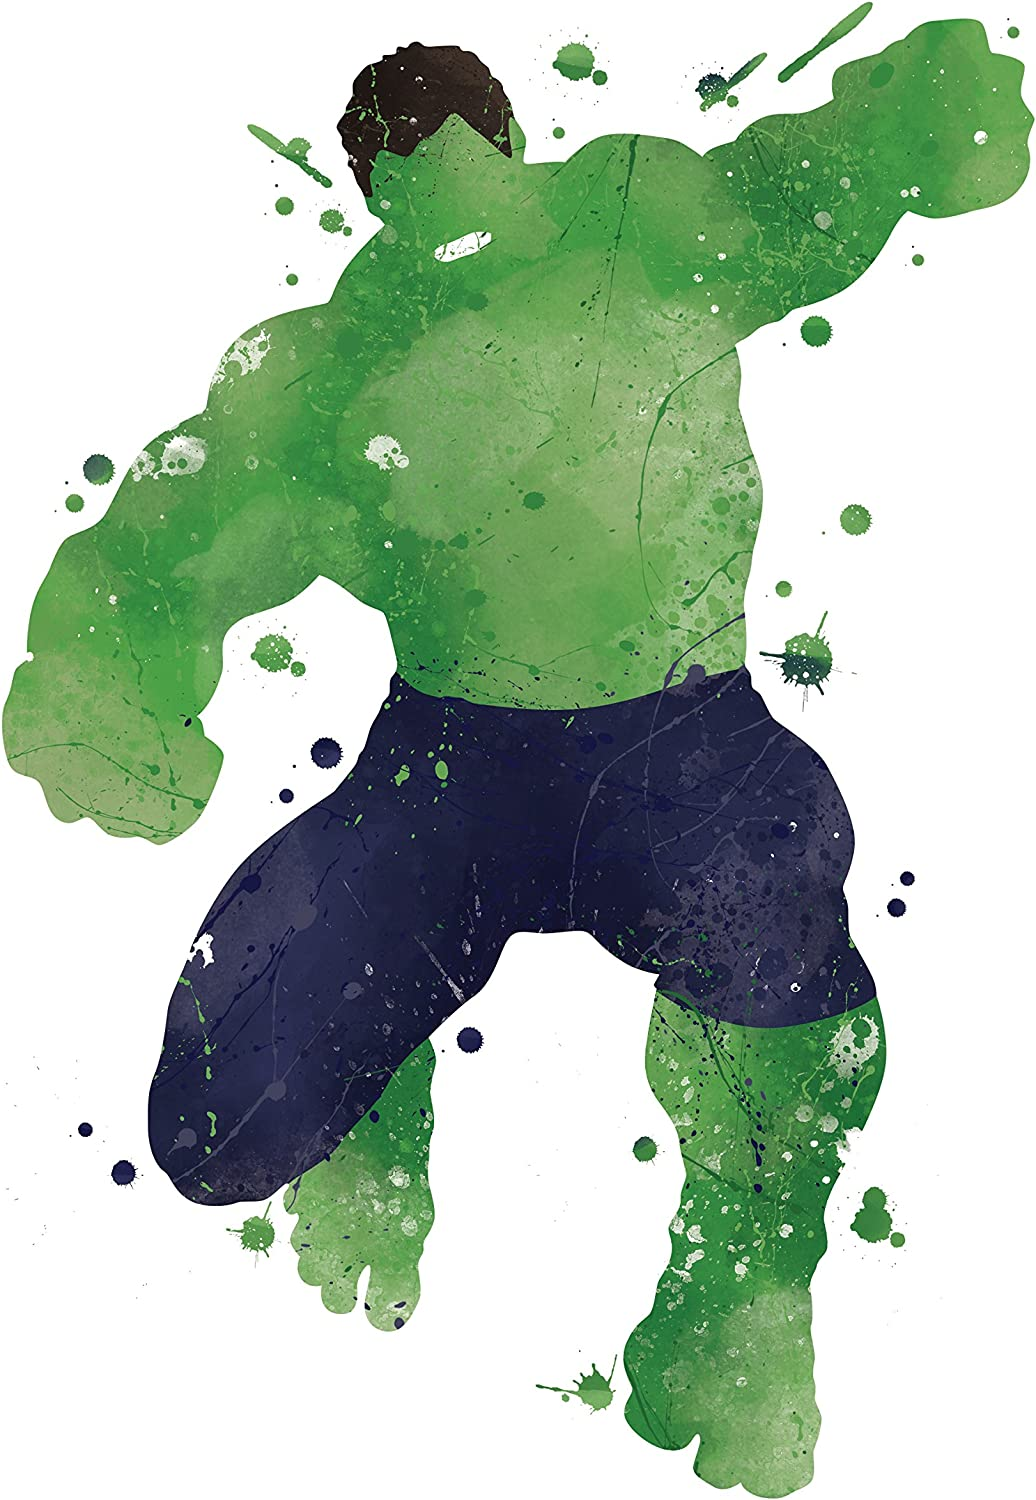 PGbureau 8x10 P06 Hulk Poster. Inspired Watercolor Illustration.Avengers Poster. Superhero Poster. Wall Art.Art Print.Wall Decor.Hulk Pictures.Kids Room Wall Art.for Wall.